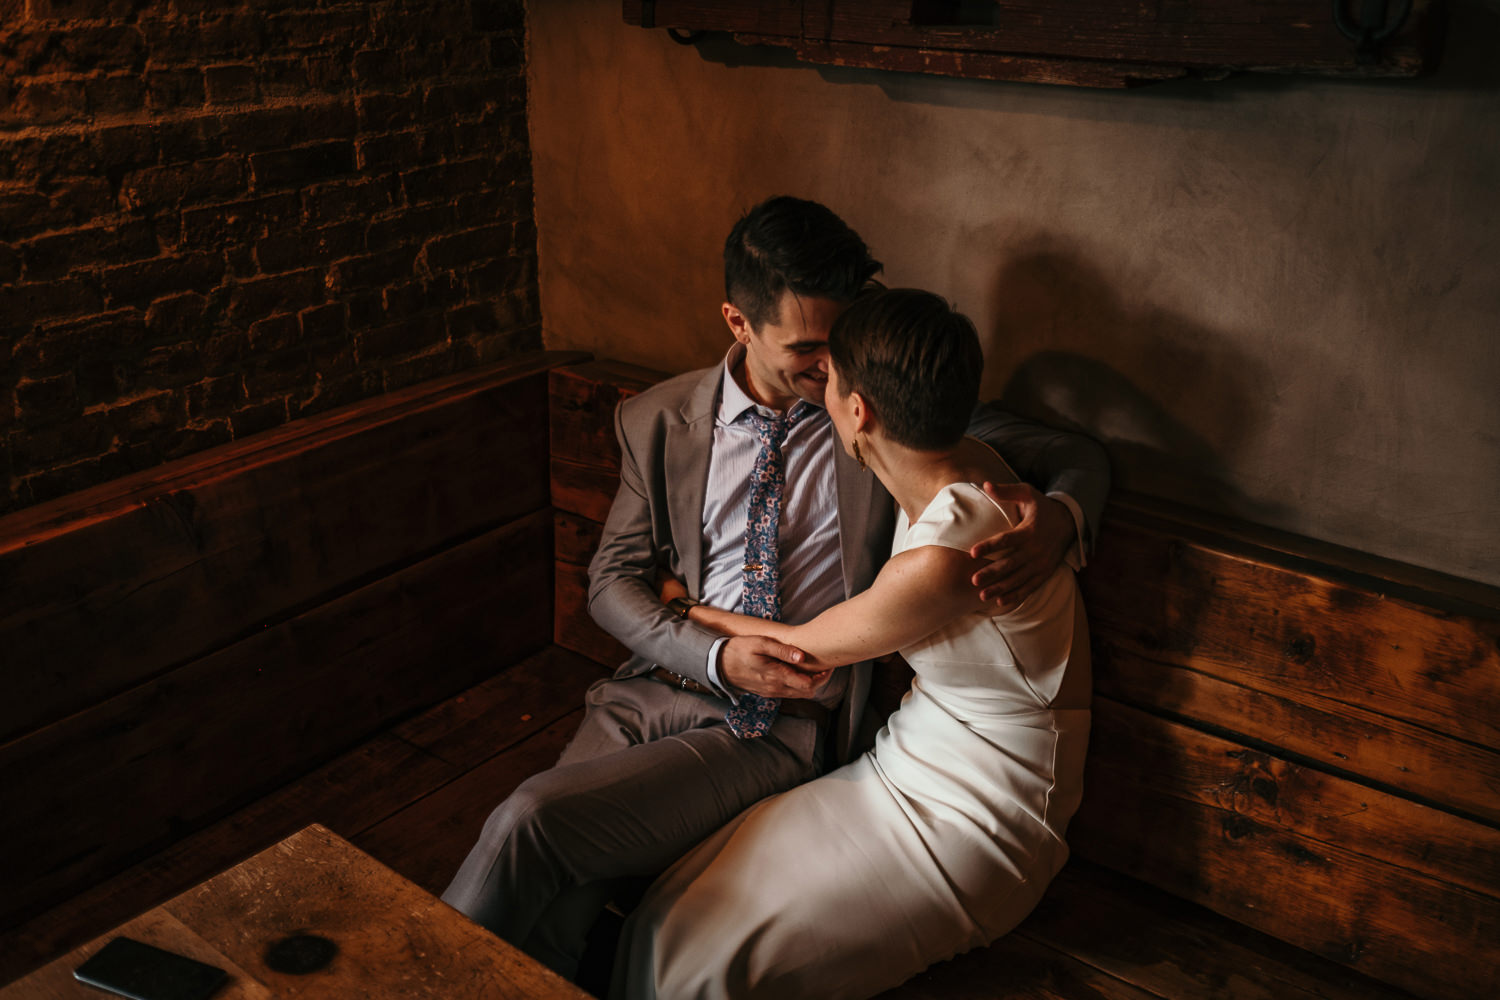 close up of newlyweds sitting on wooden bench hugging foreheads touching